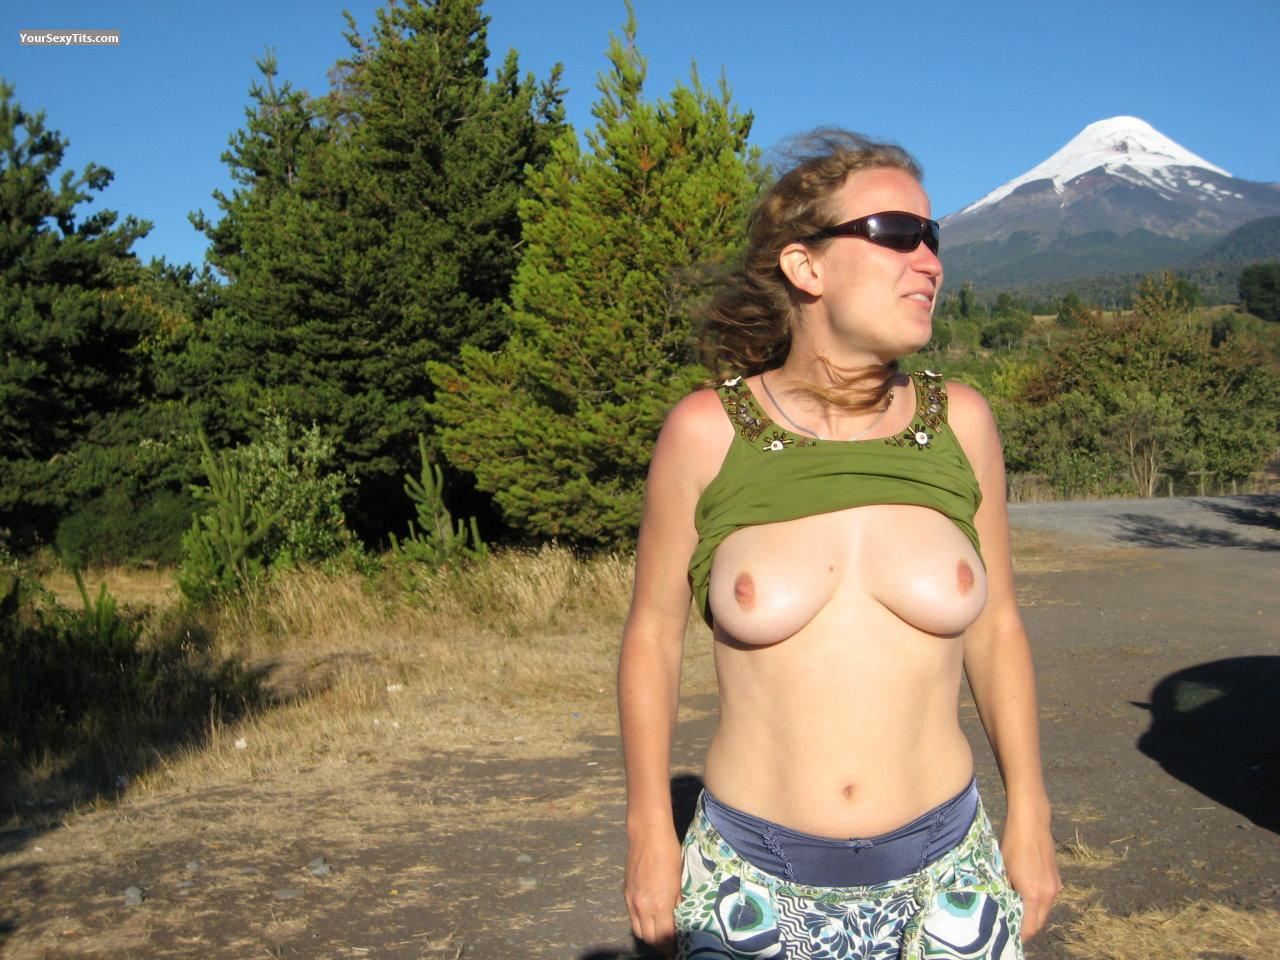 Tit Flash: Medium Tits - Topless Natural Beauty from Canada